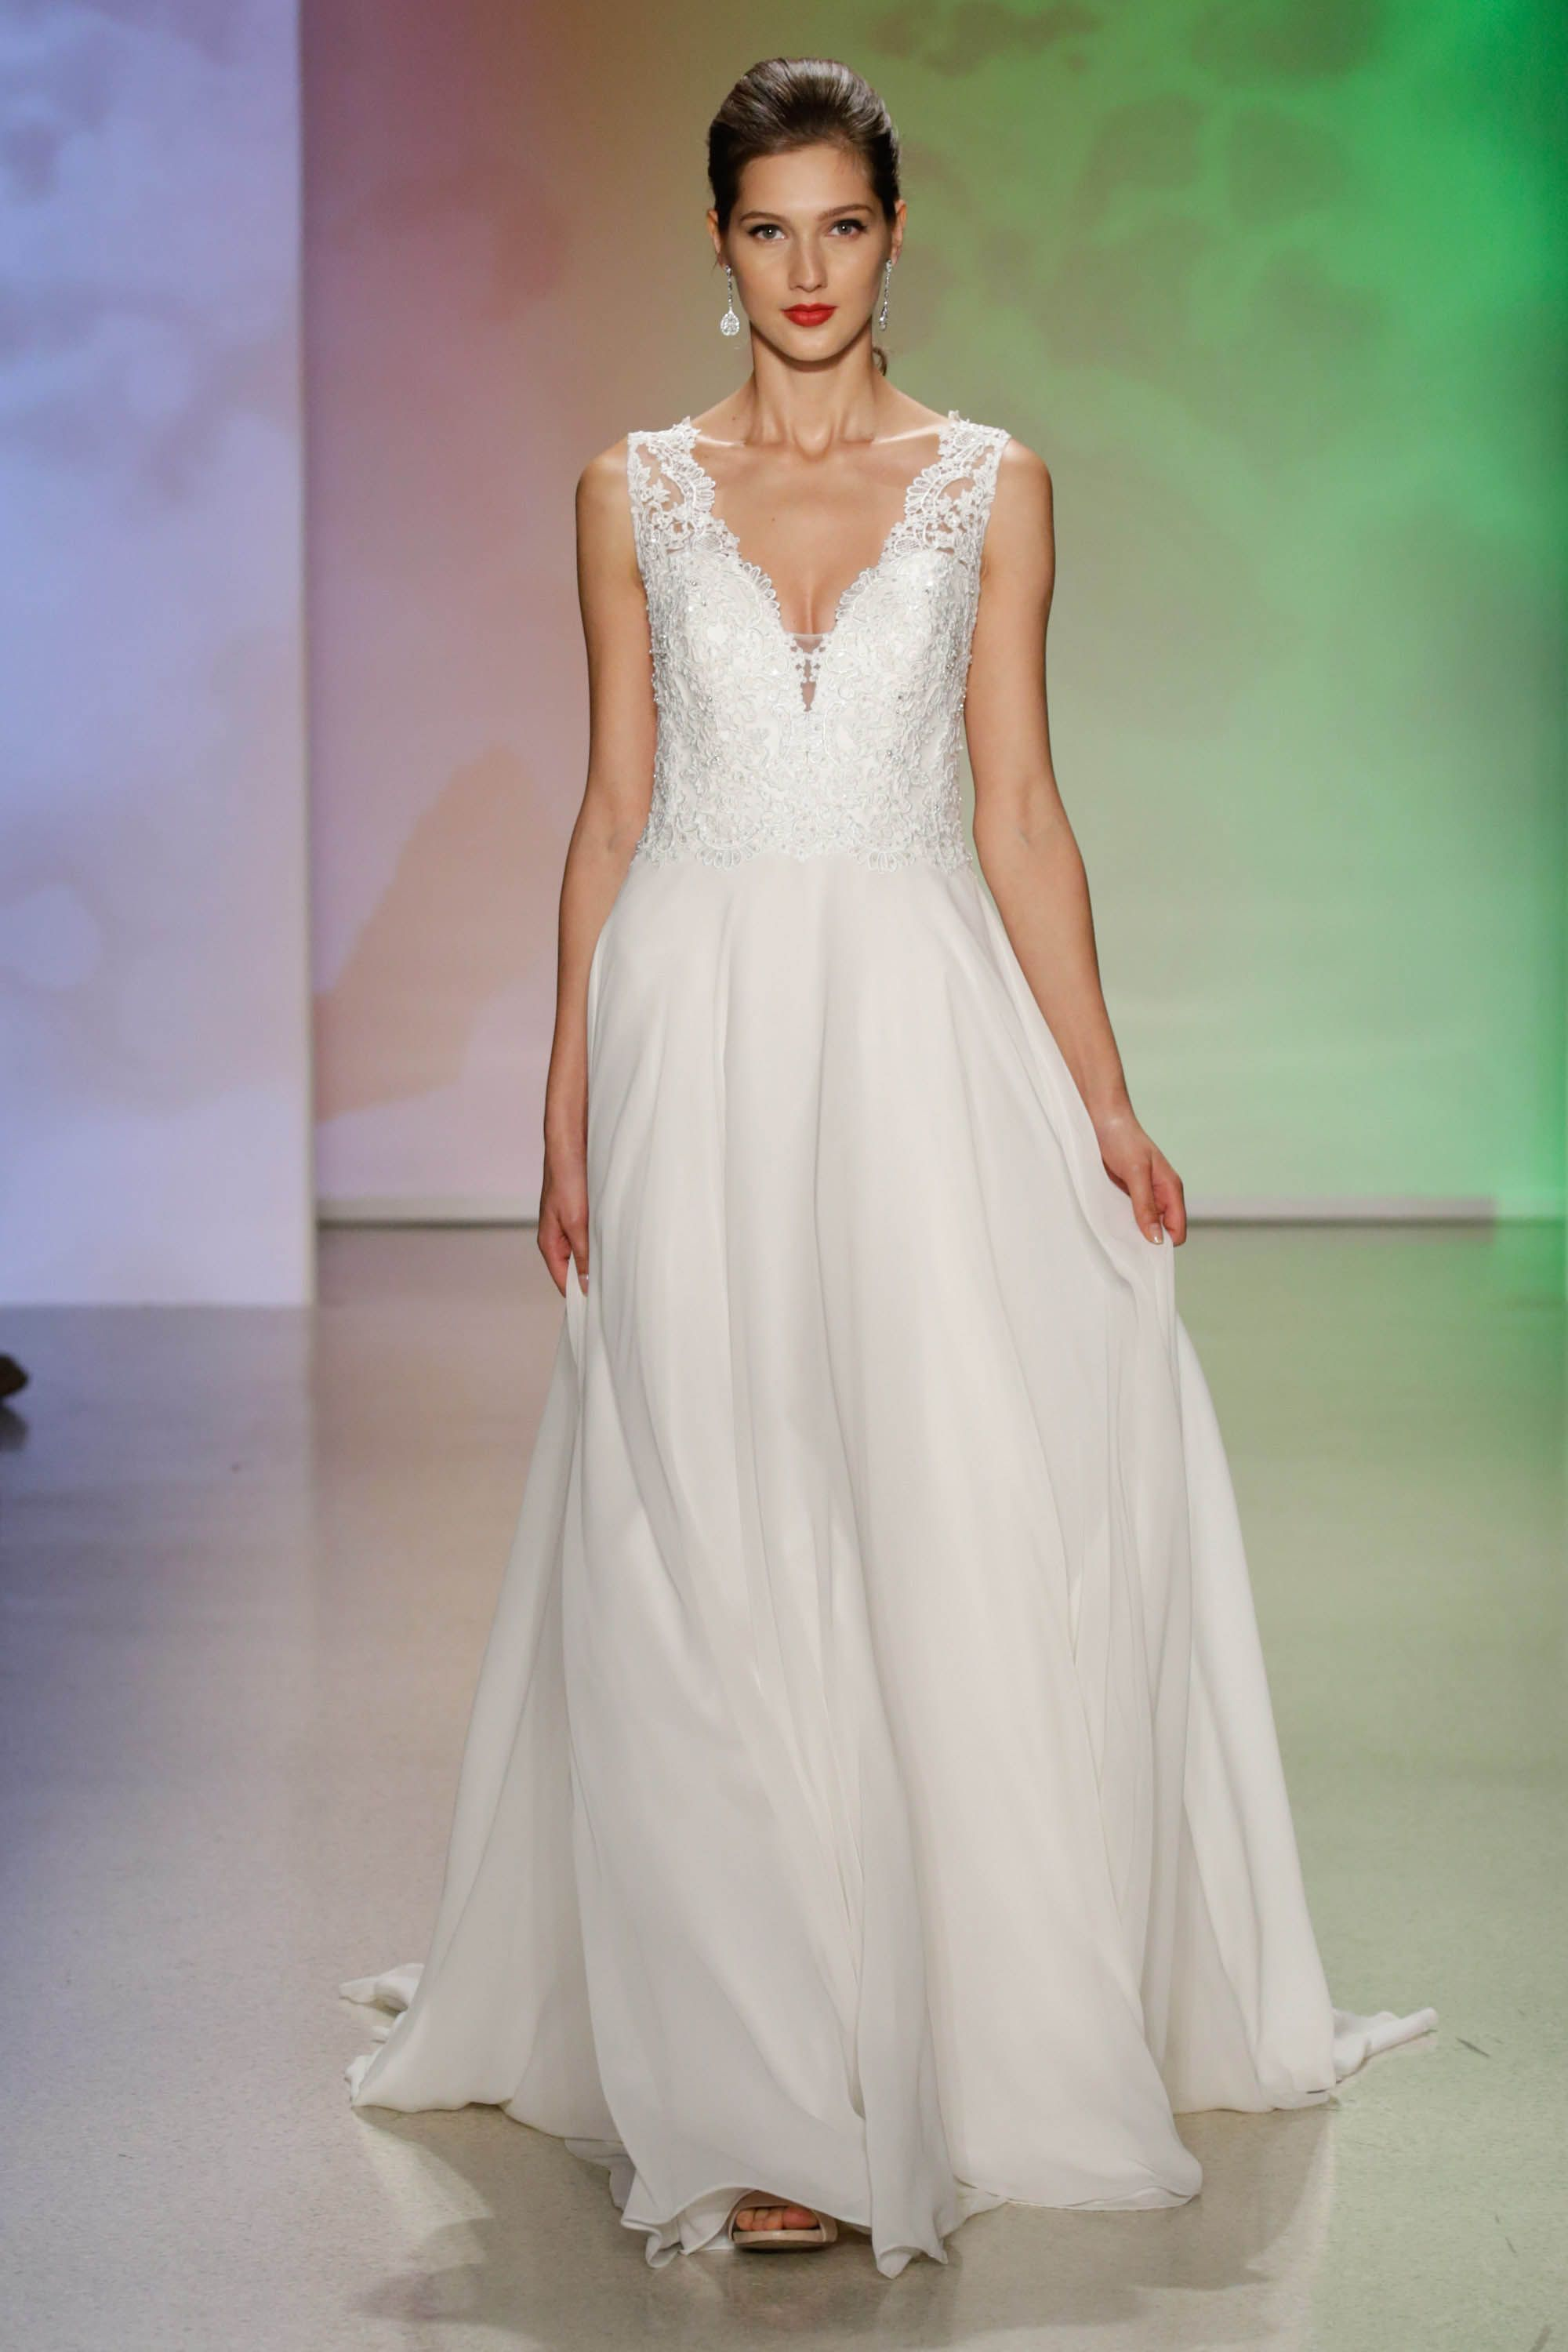 Sleeping beauty inspired gown 2017 disneys fairy tale weddings sleeping beauty inspired gown 2017 disneys fairy tale weddings by alfred angelo collection ombrellifo Gallery